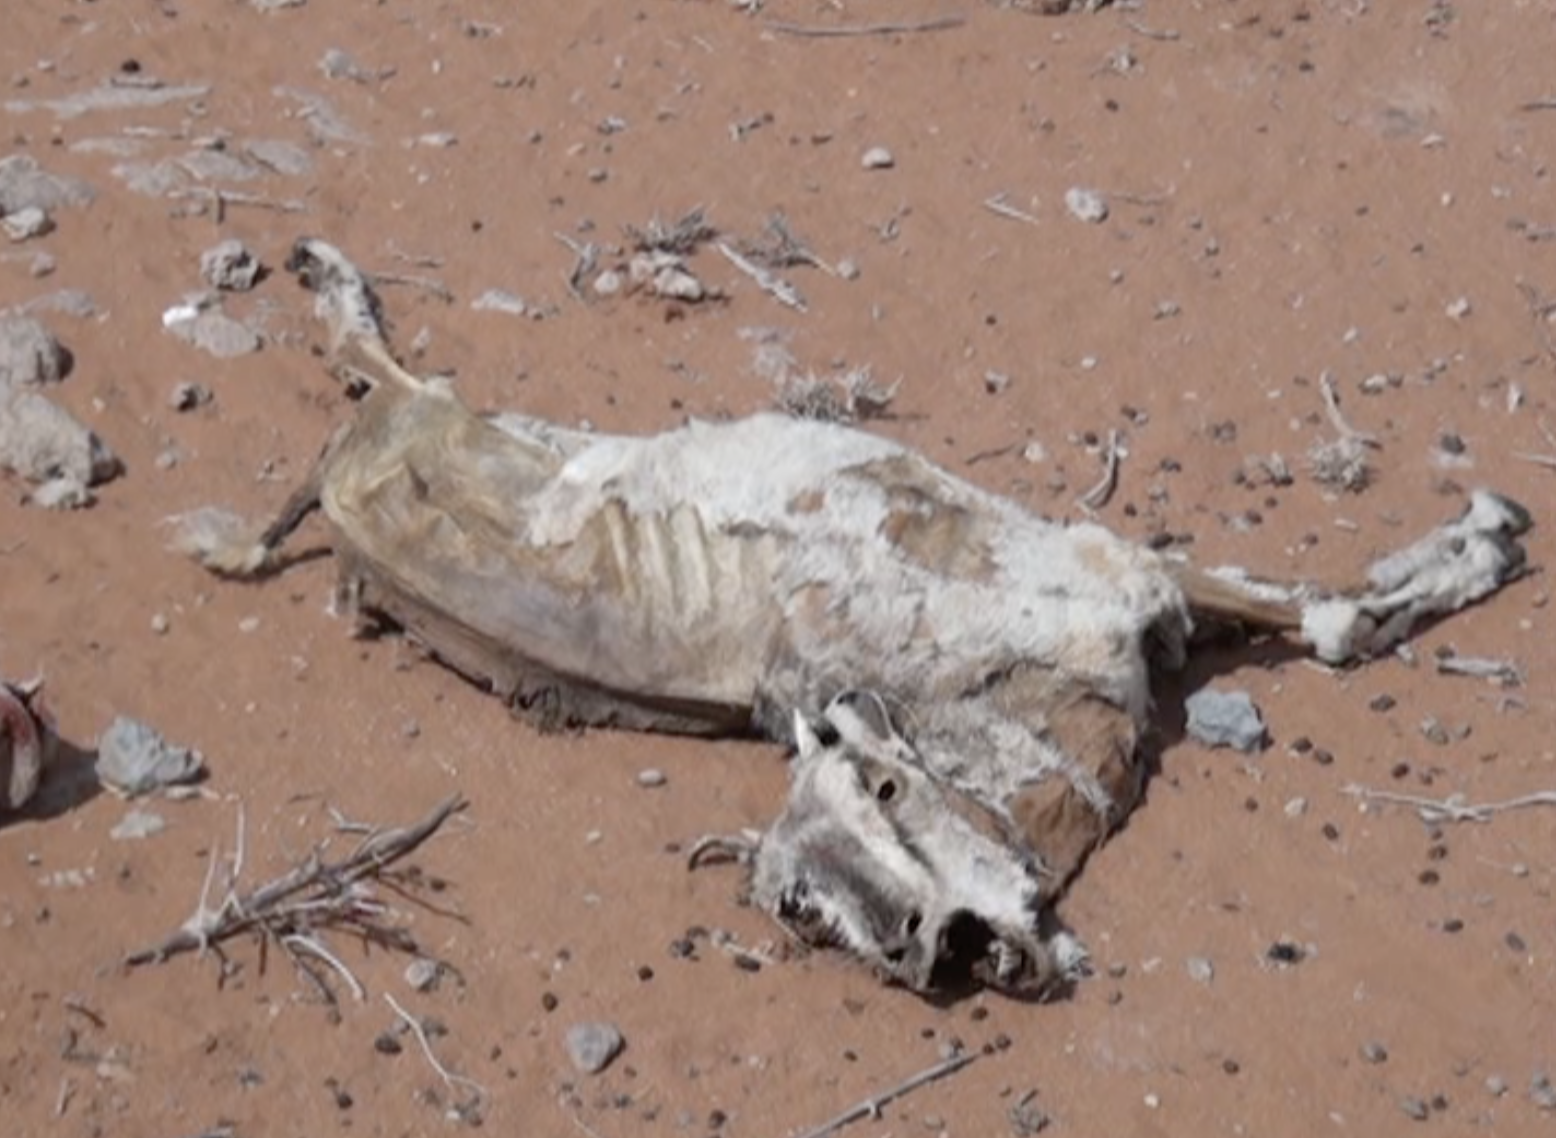 A goat that has succumb to the heat and dryness